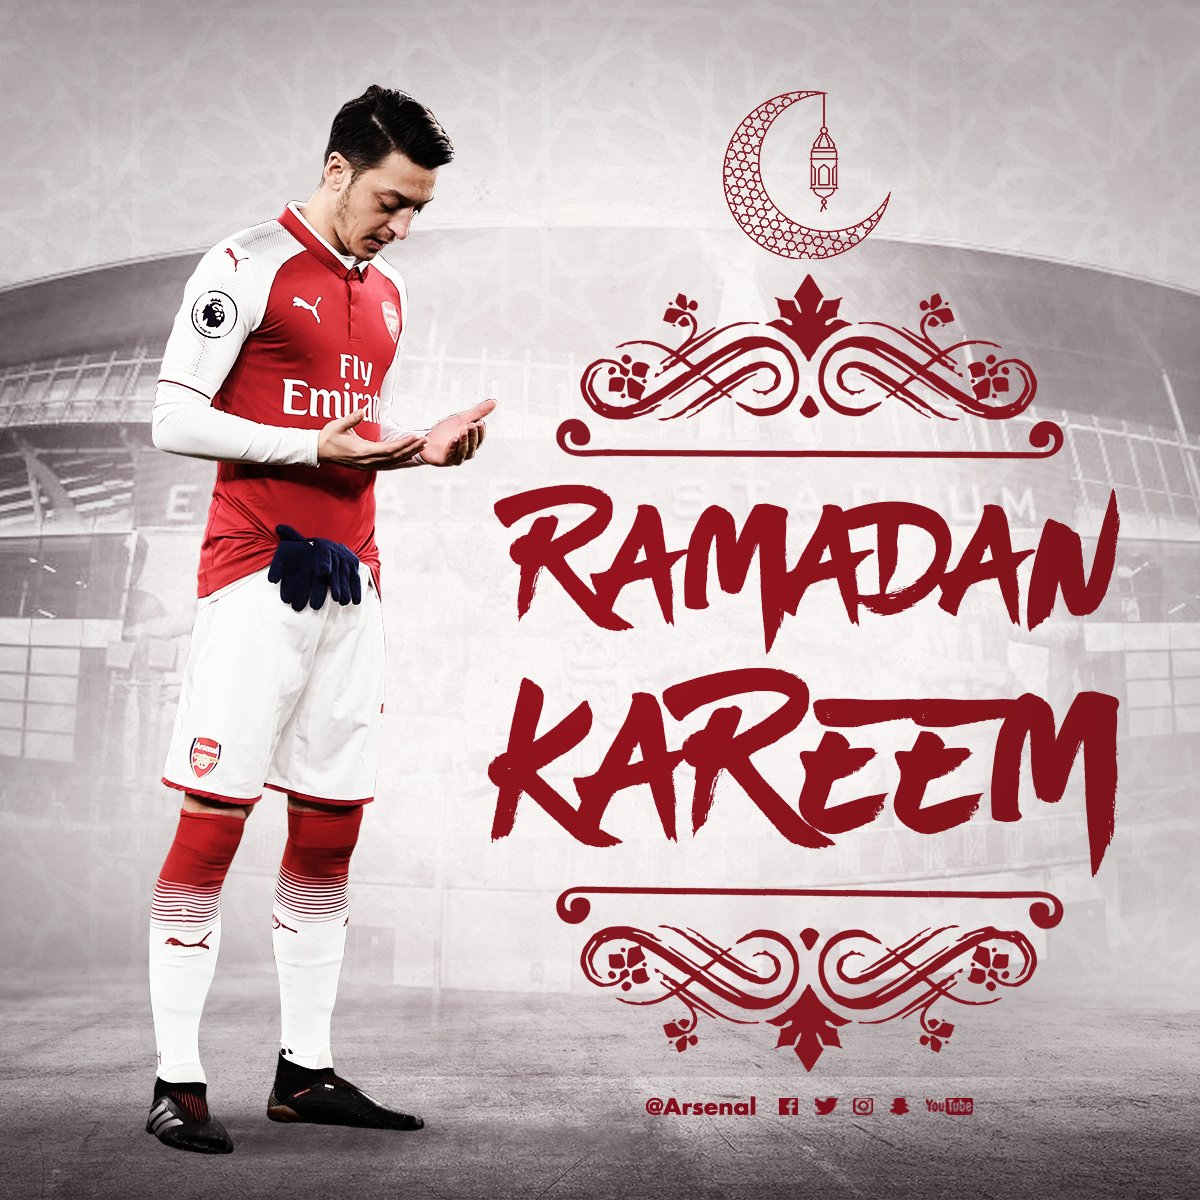 All of us here at Arsenal would like to wish a blessed #Ramadan to everyone celebrating